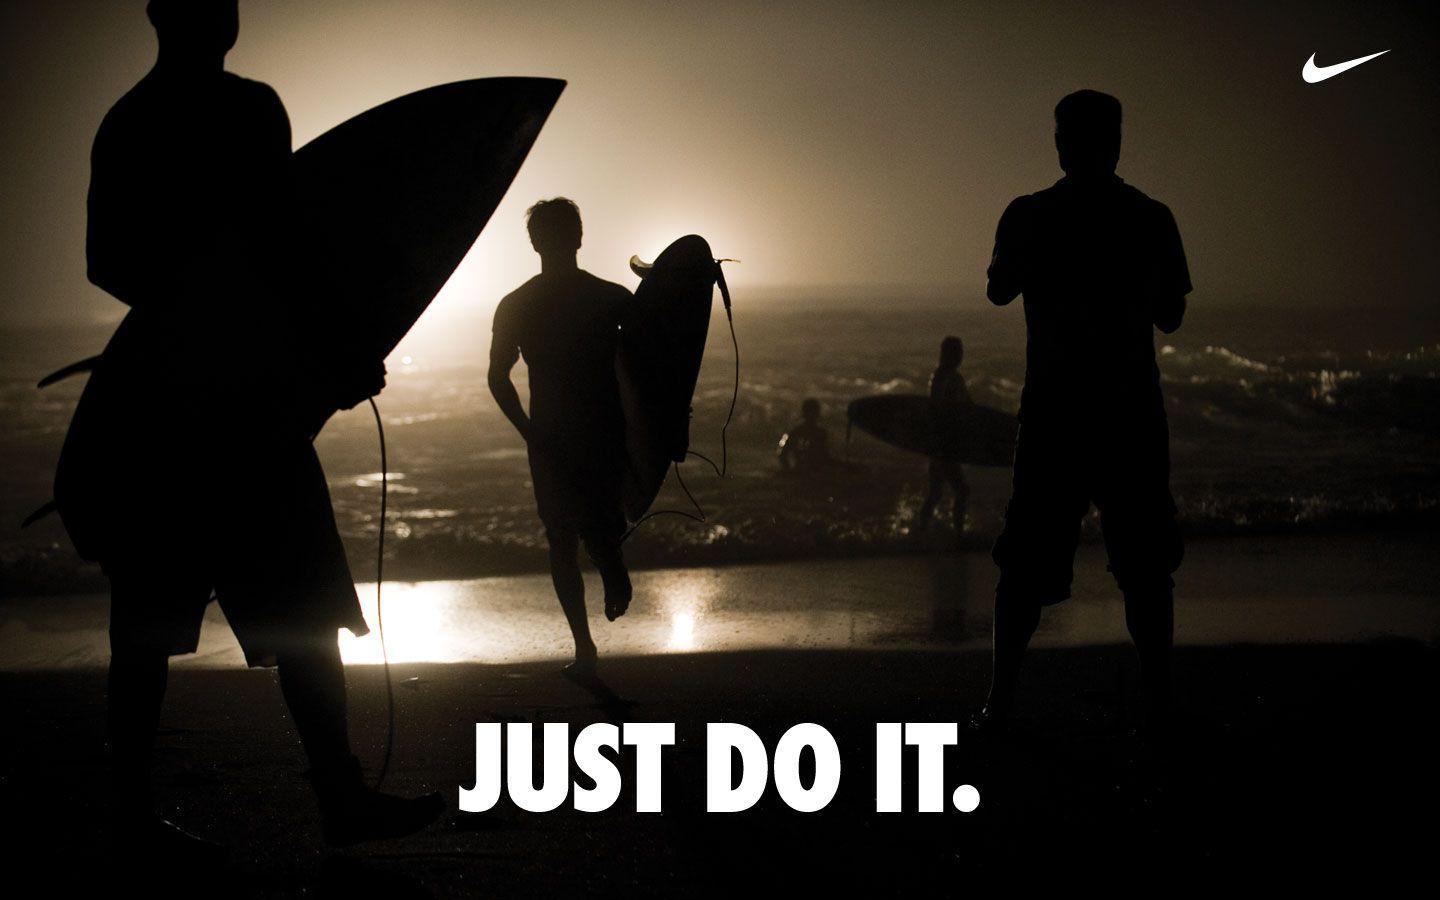 Nike Just Do It Wallpapers 23271 1440x900 px